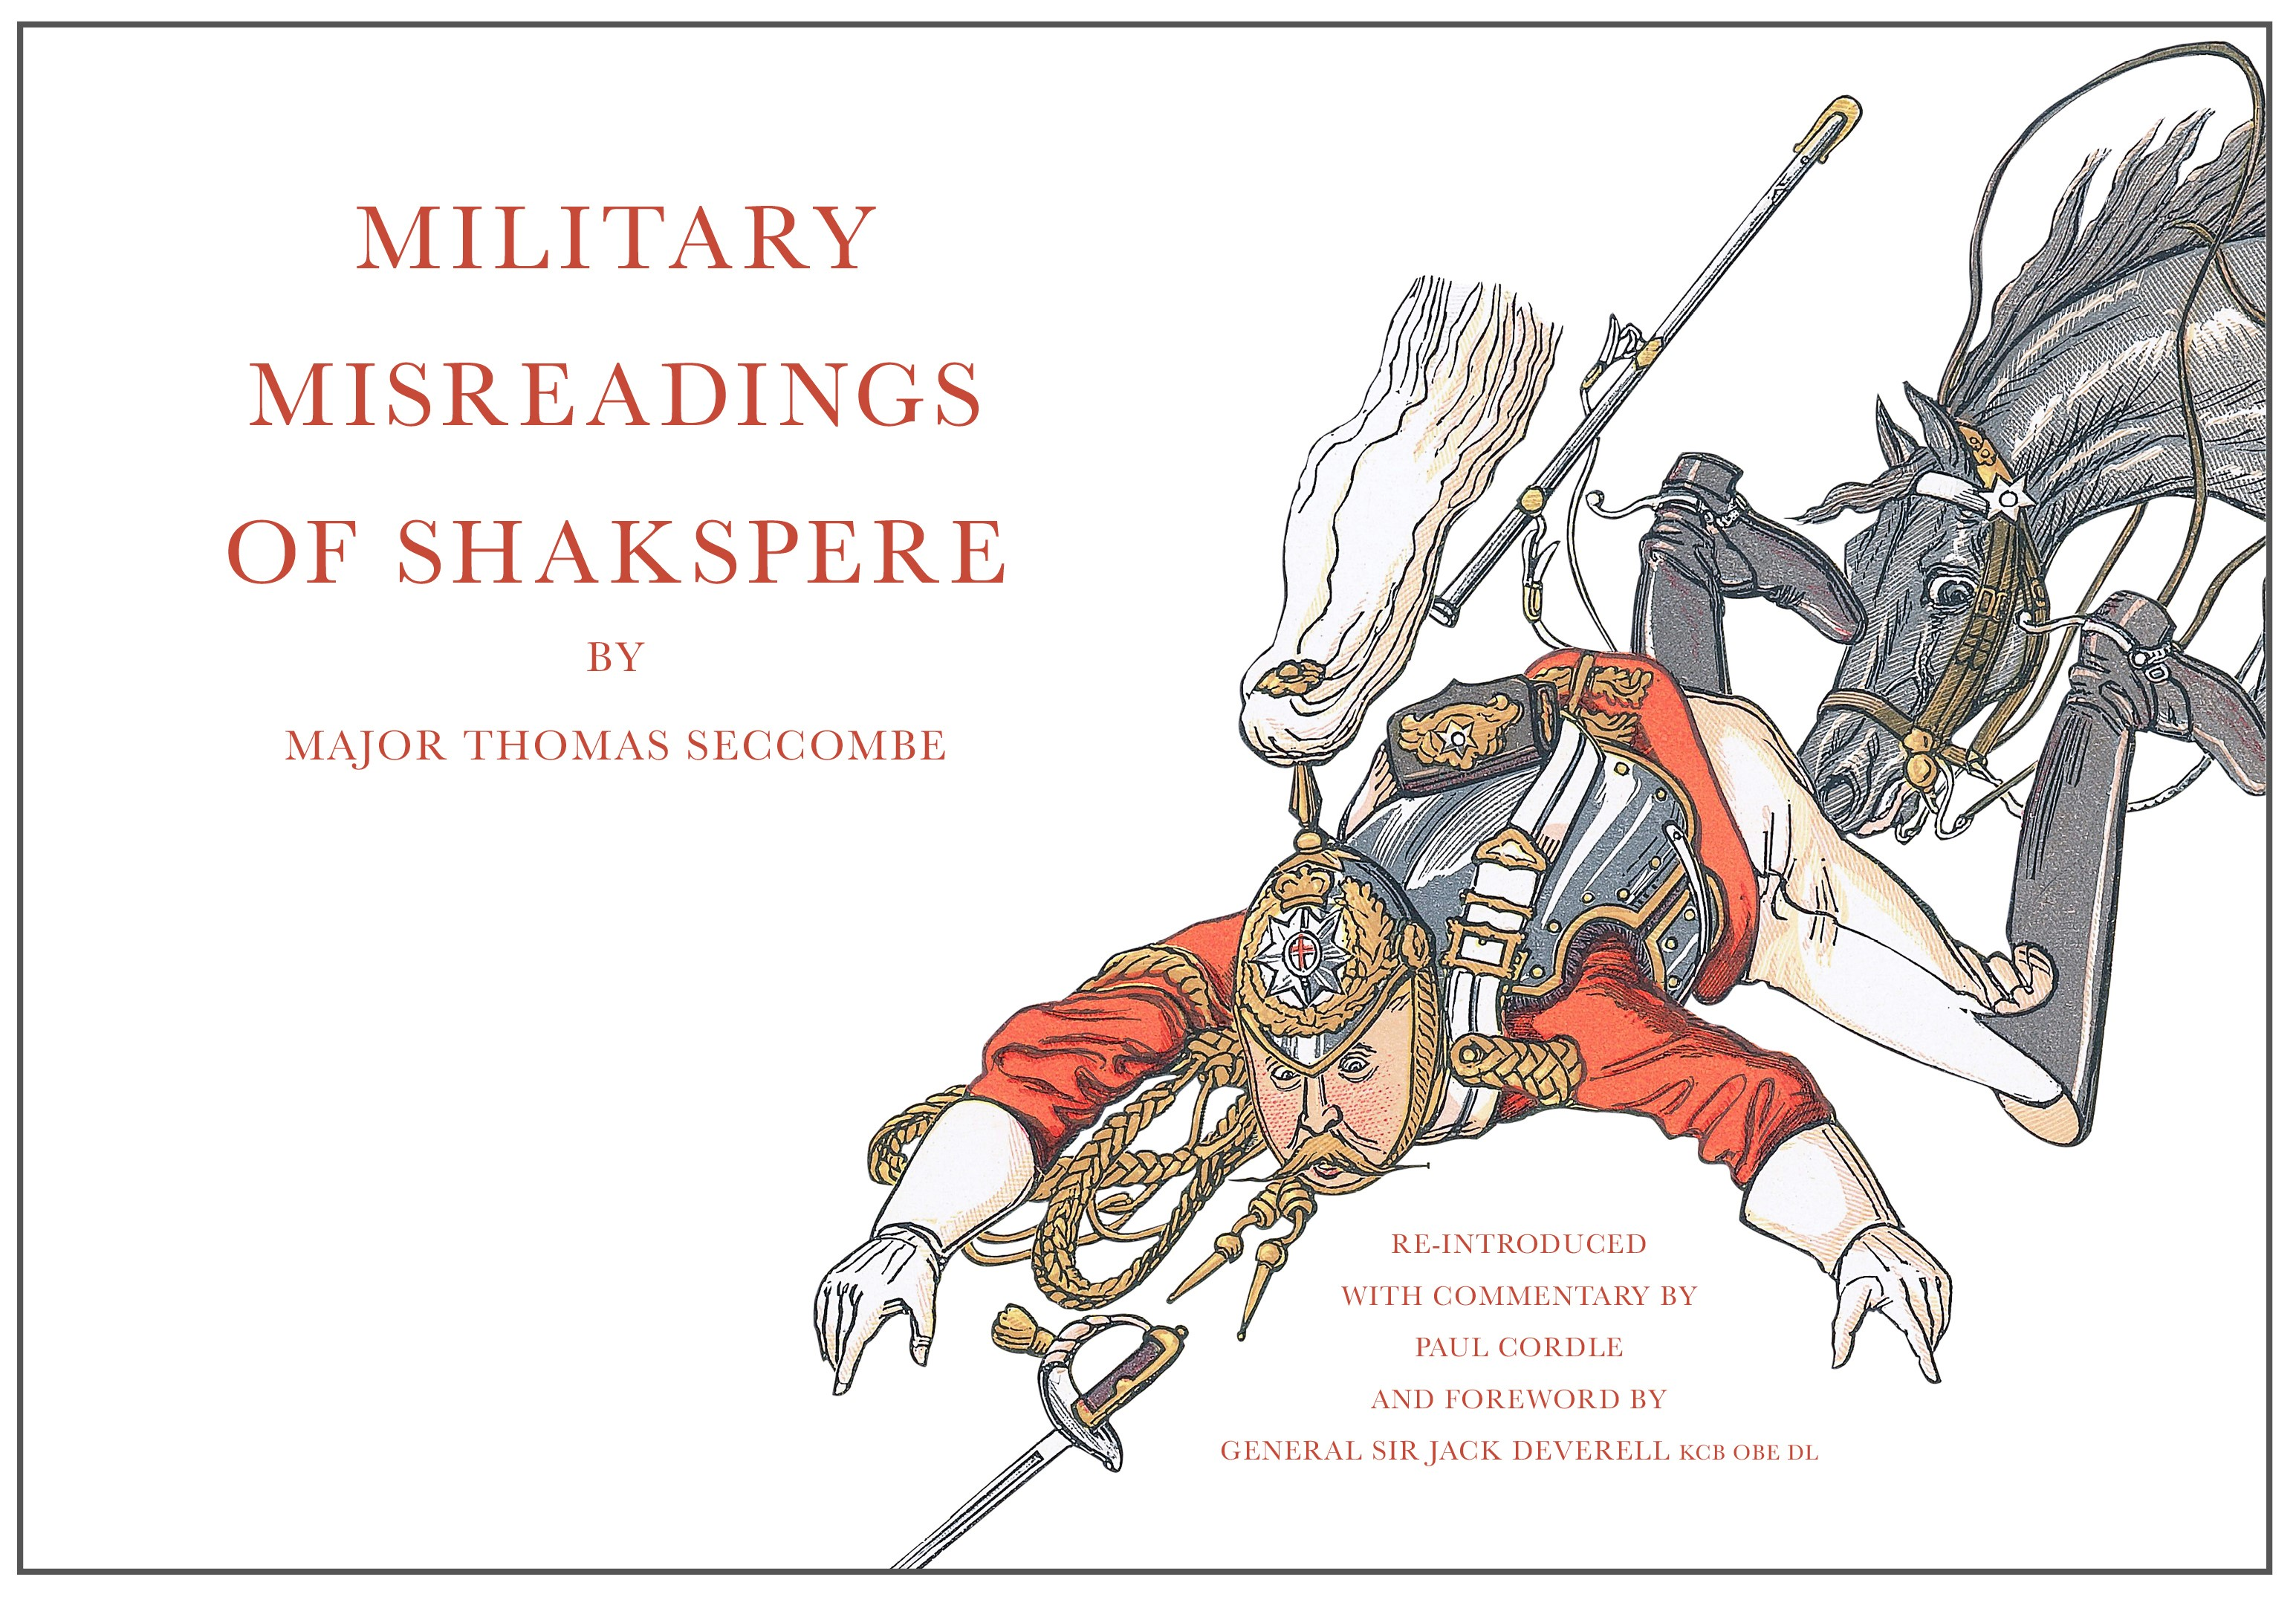 Military Misreadings of Shakespere*